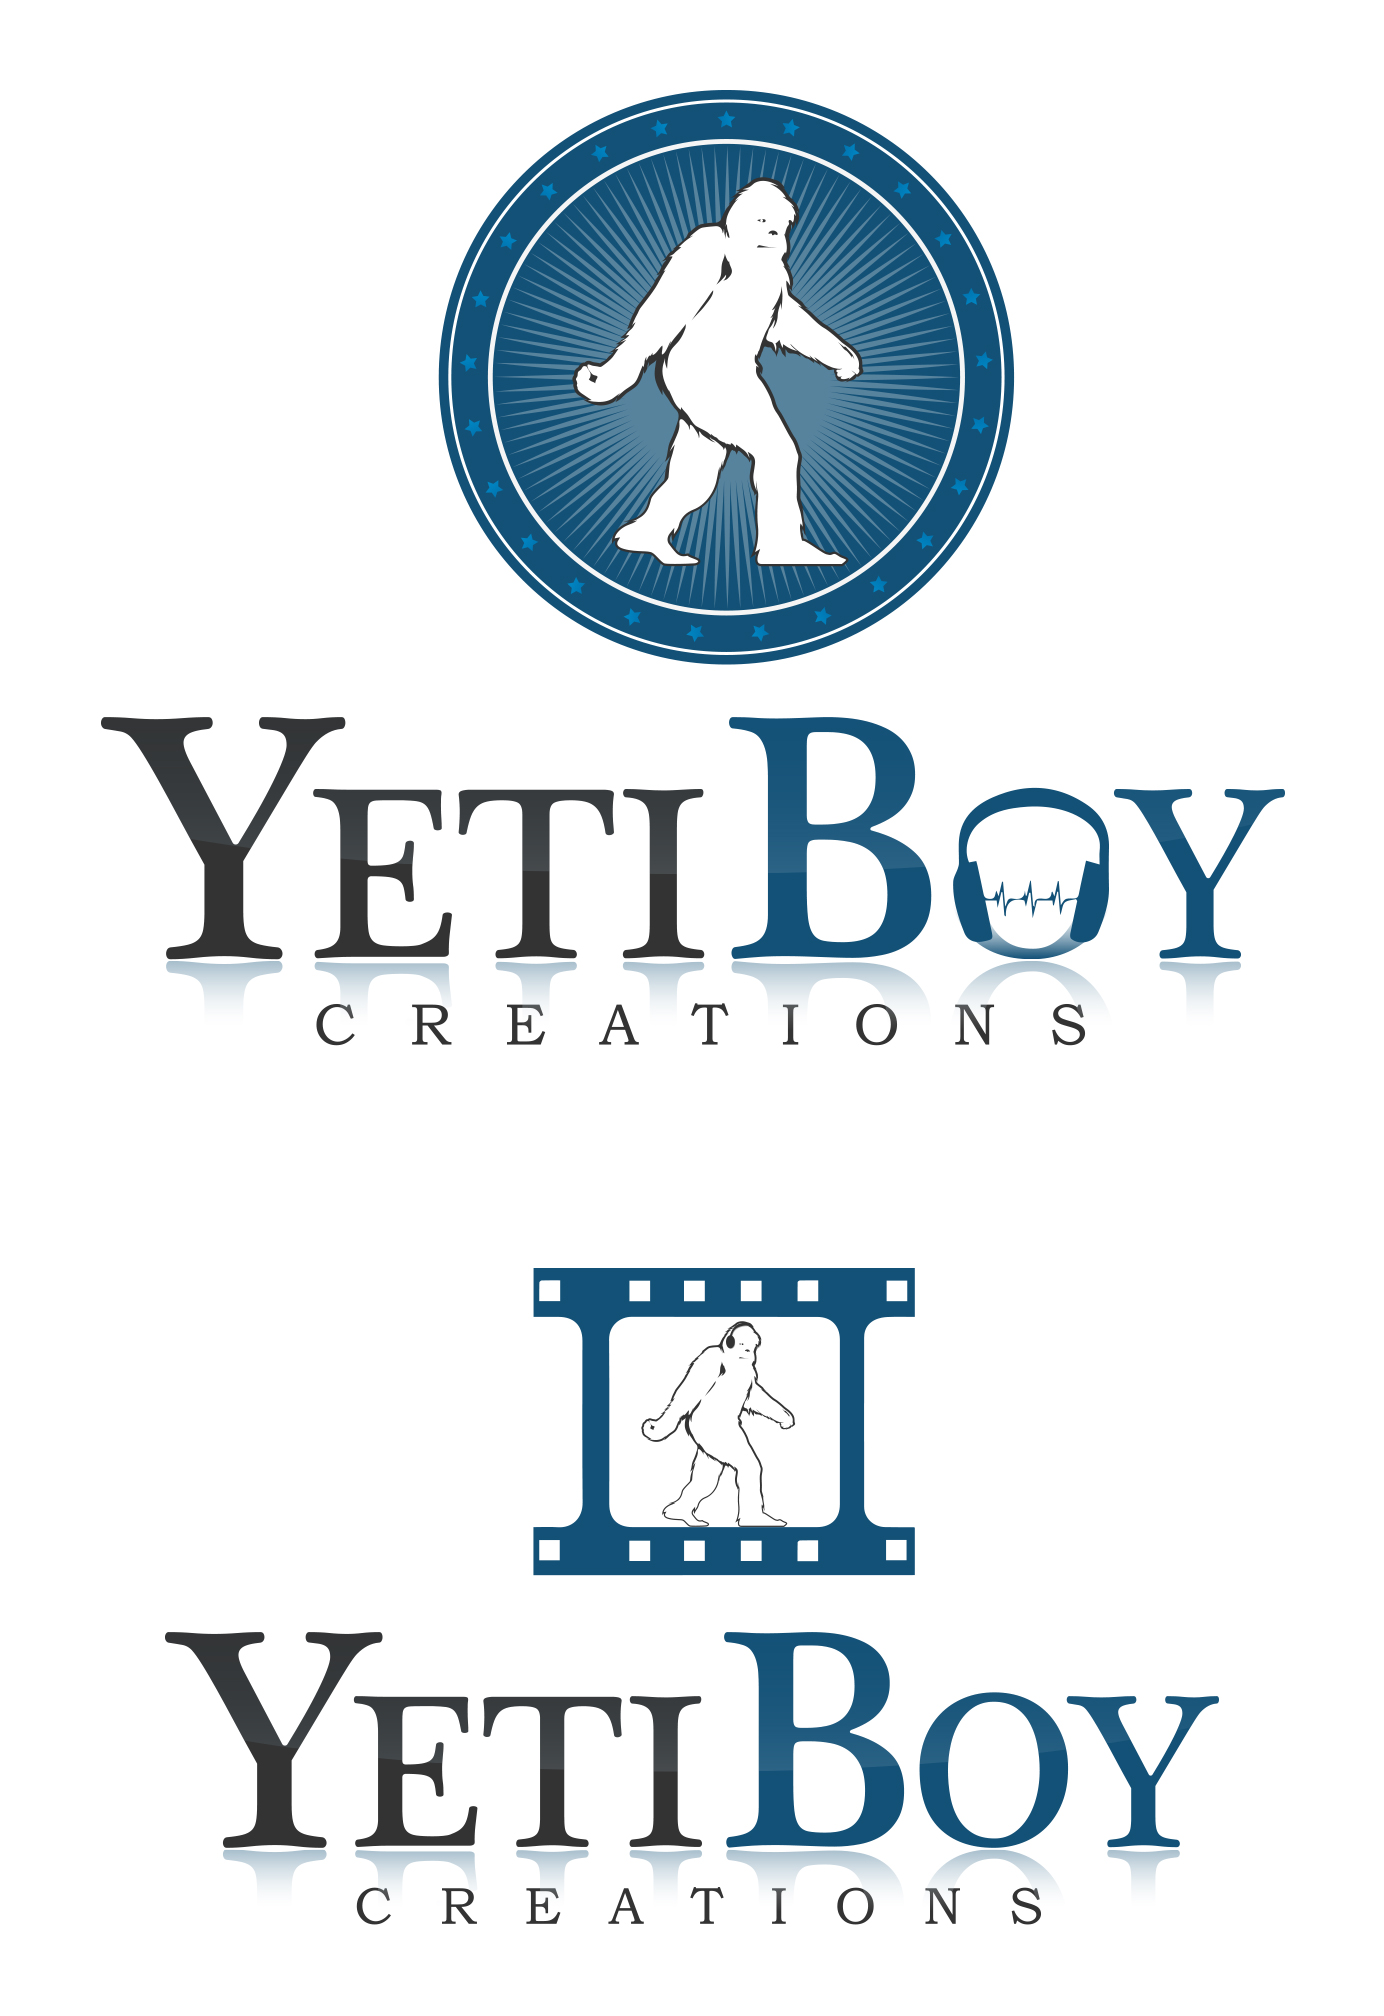 Logo Design by olii - Entry No. 76 in the Logo Design Contest Captivating Logo Design for Yeti Boy Creations.